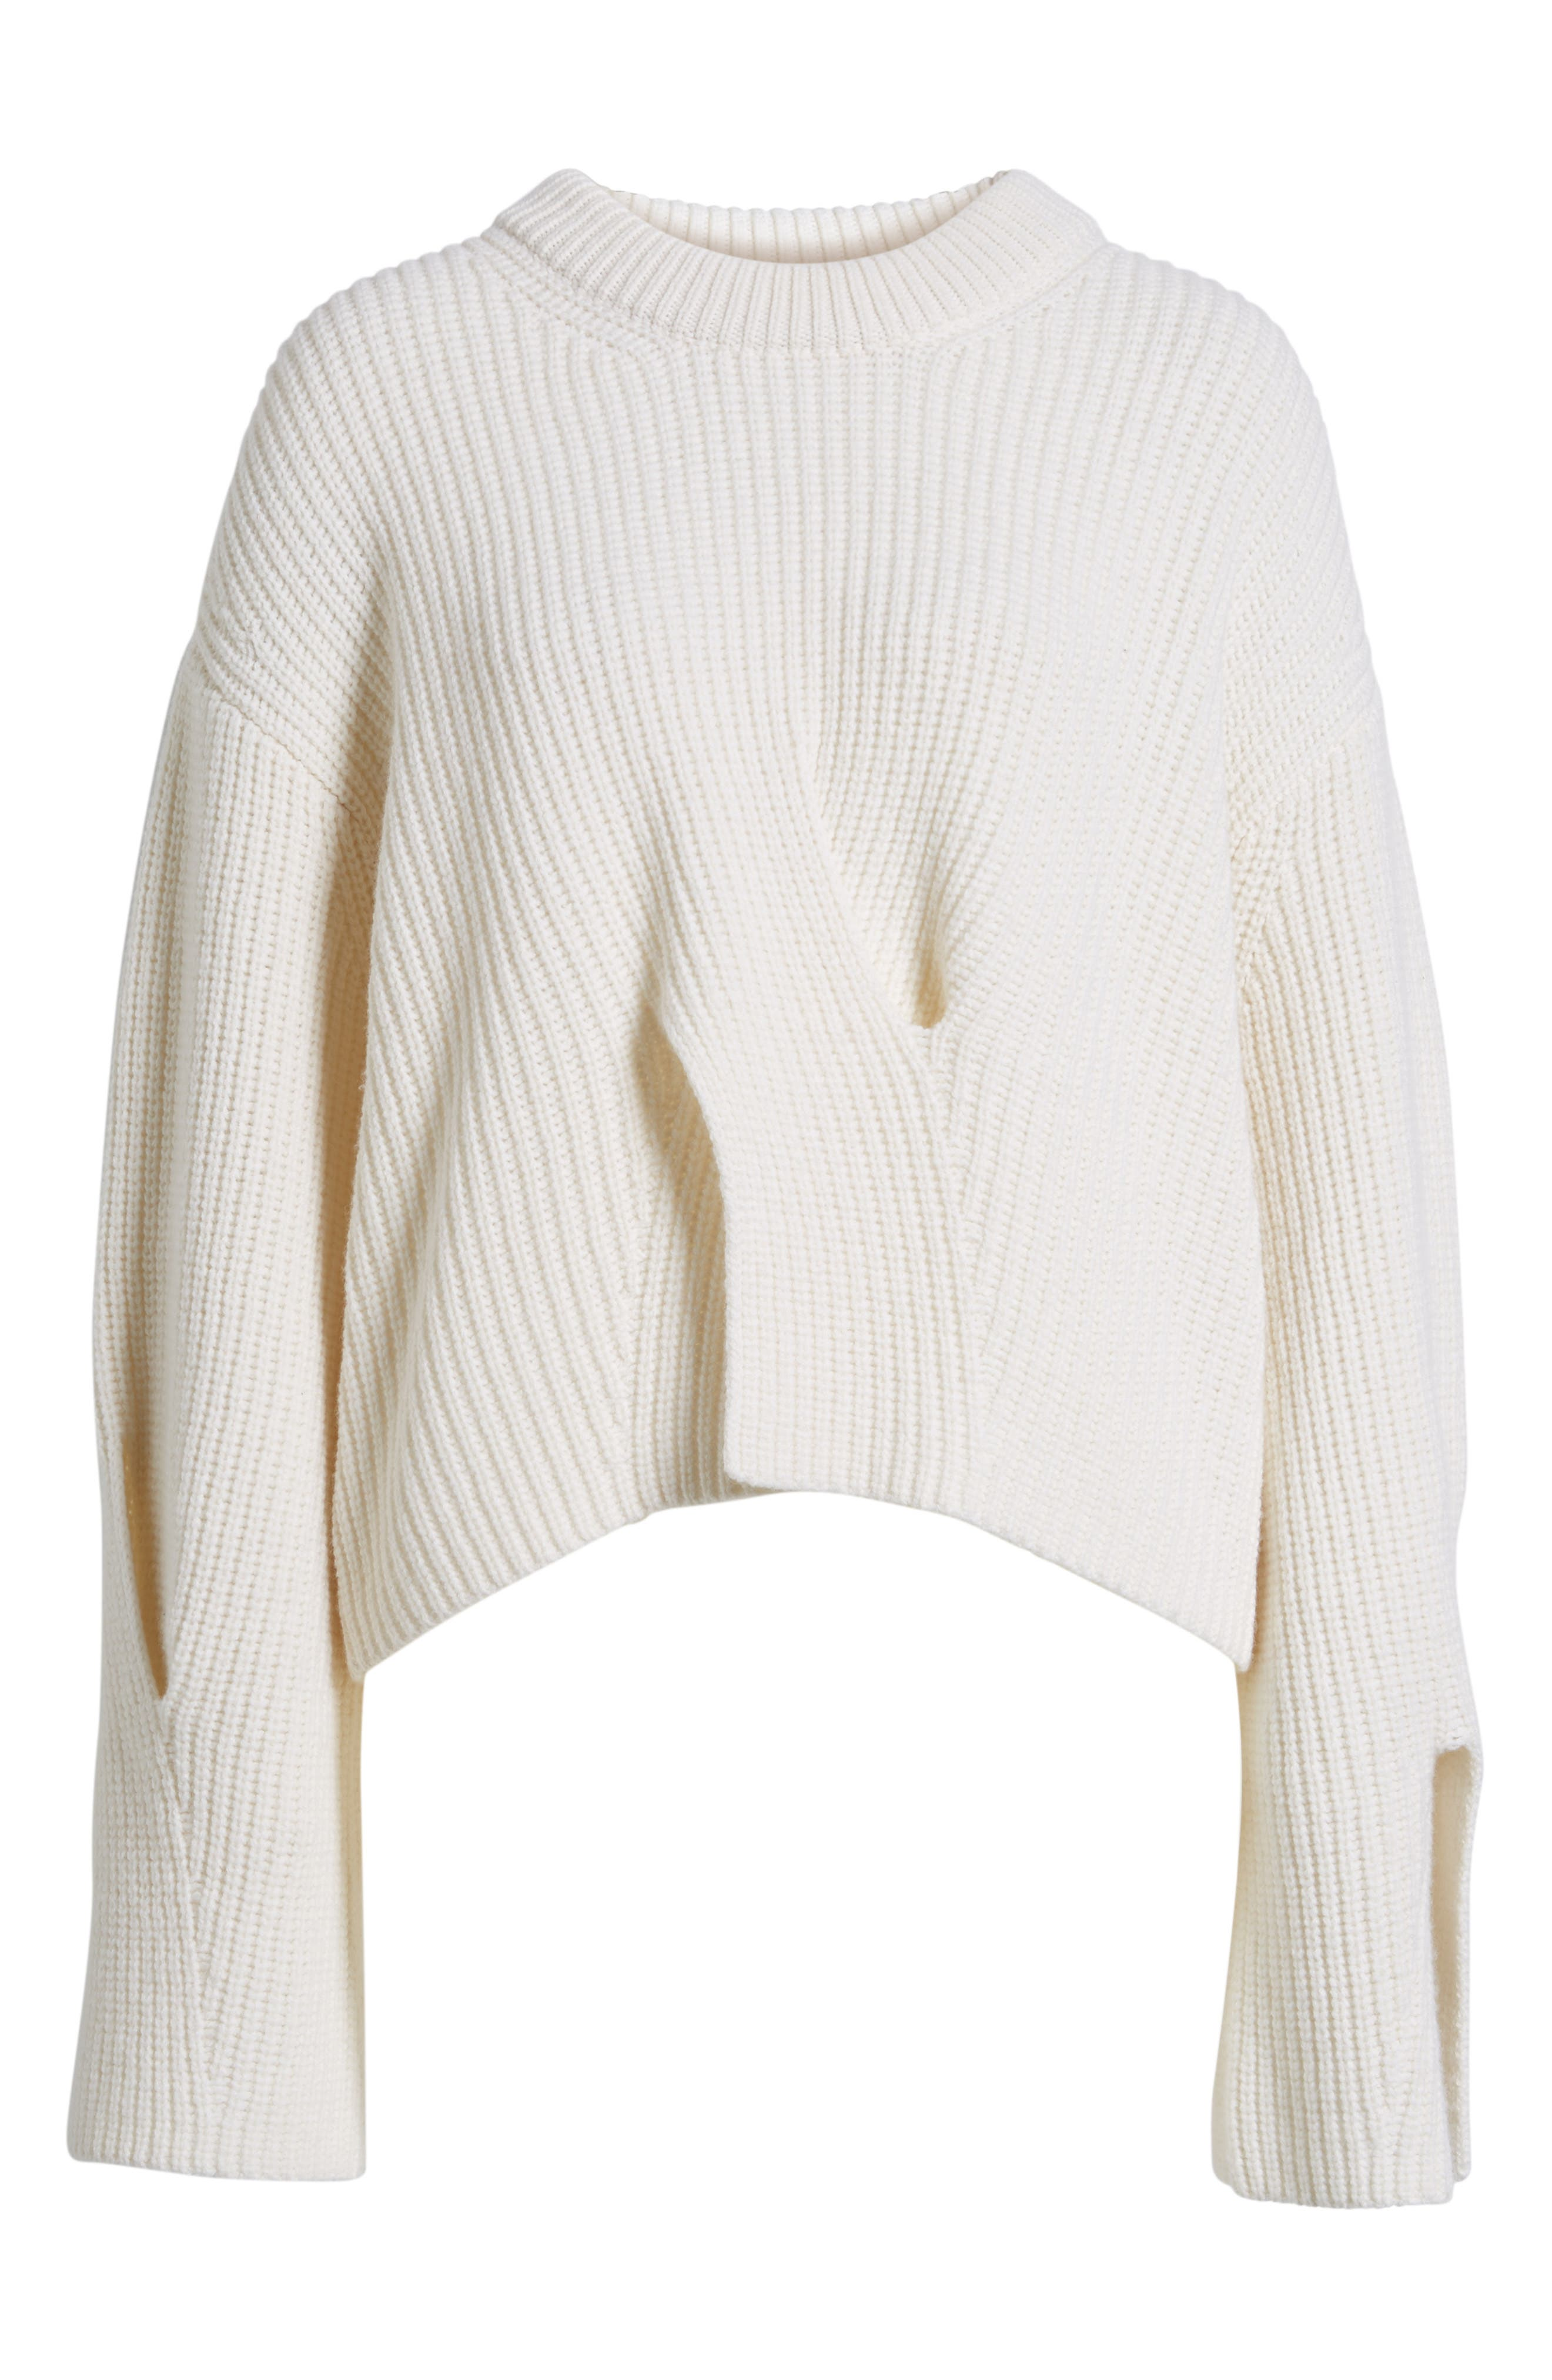 Fihra Wool Blend Sweater,                             Alternate thumbnail 6, color,                             252